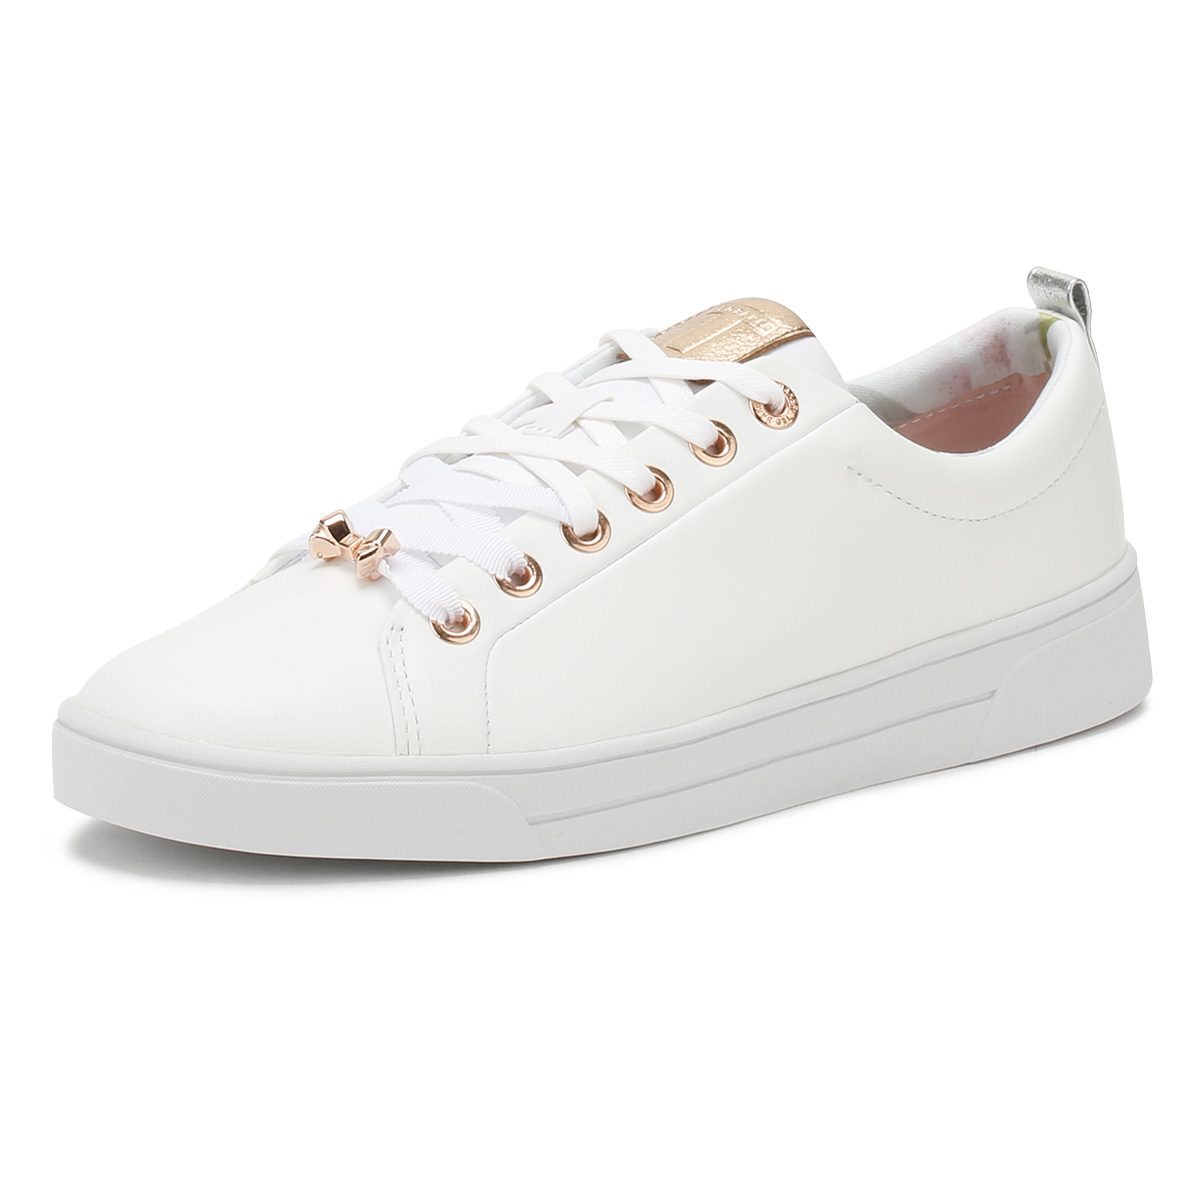 a88dd5ea59b Details about Ted Baker Womens White Kellei Trainers Lace Up Sport Casual  Ladies Shoes